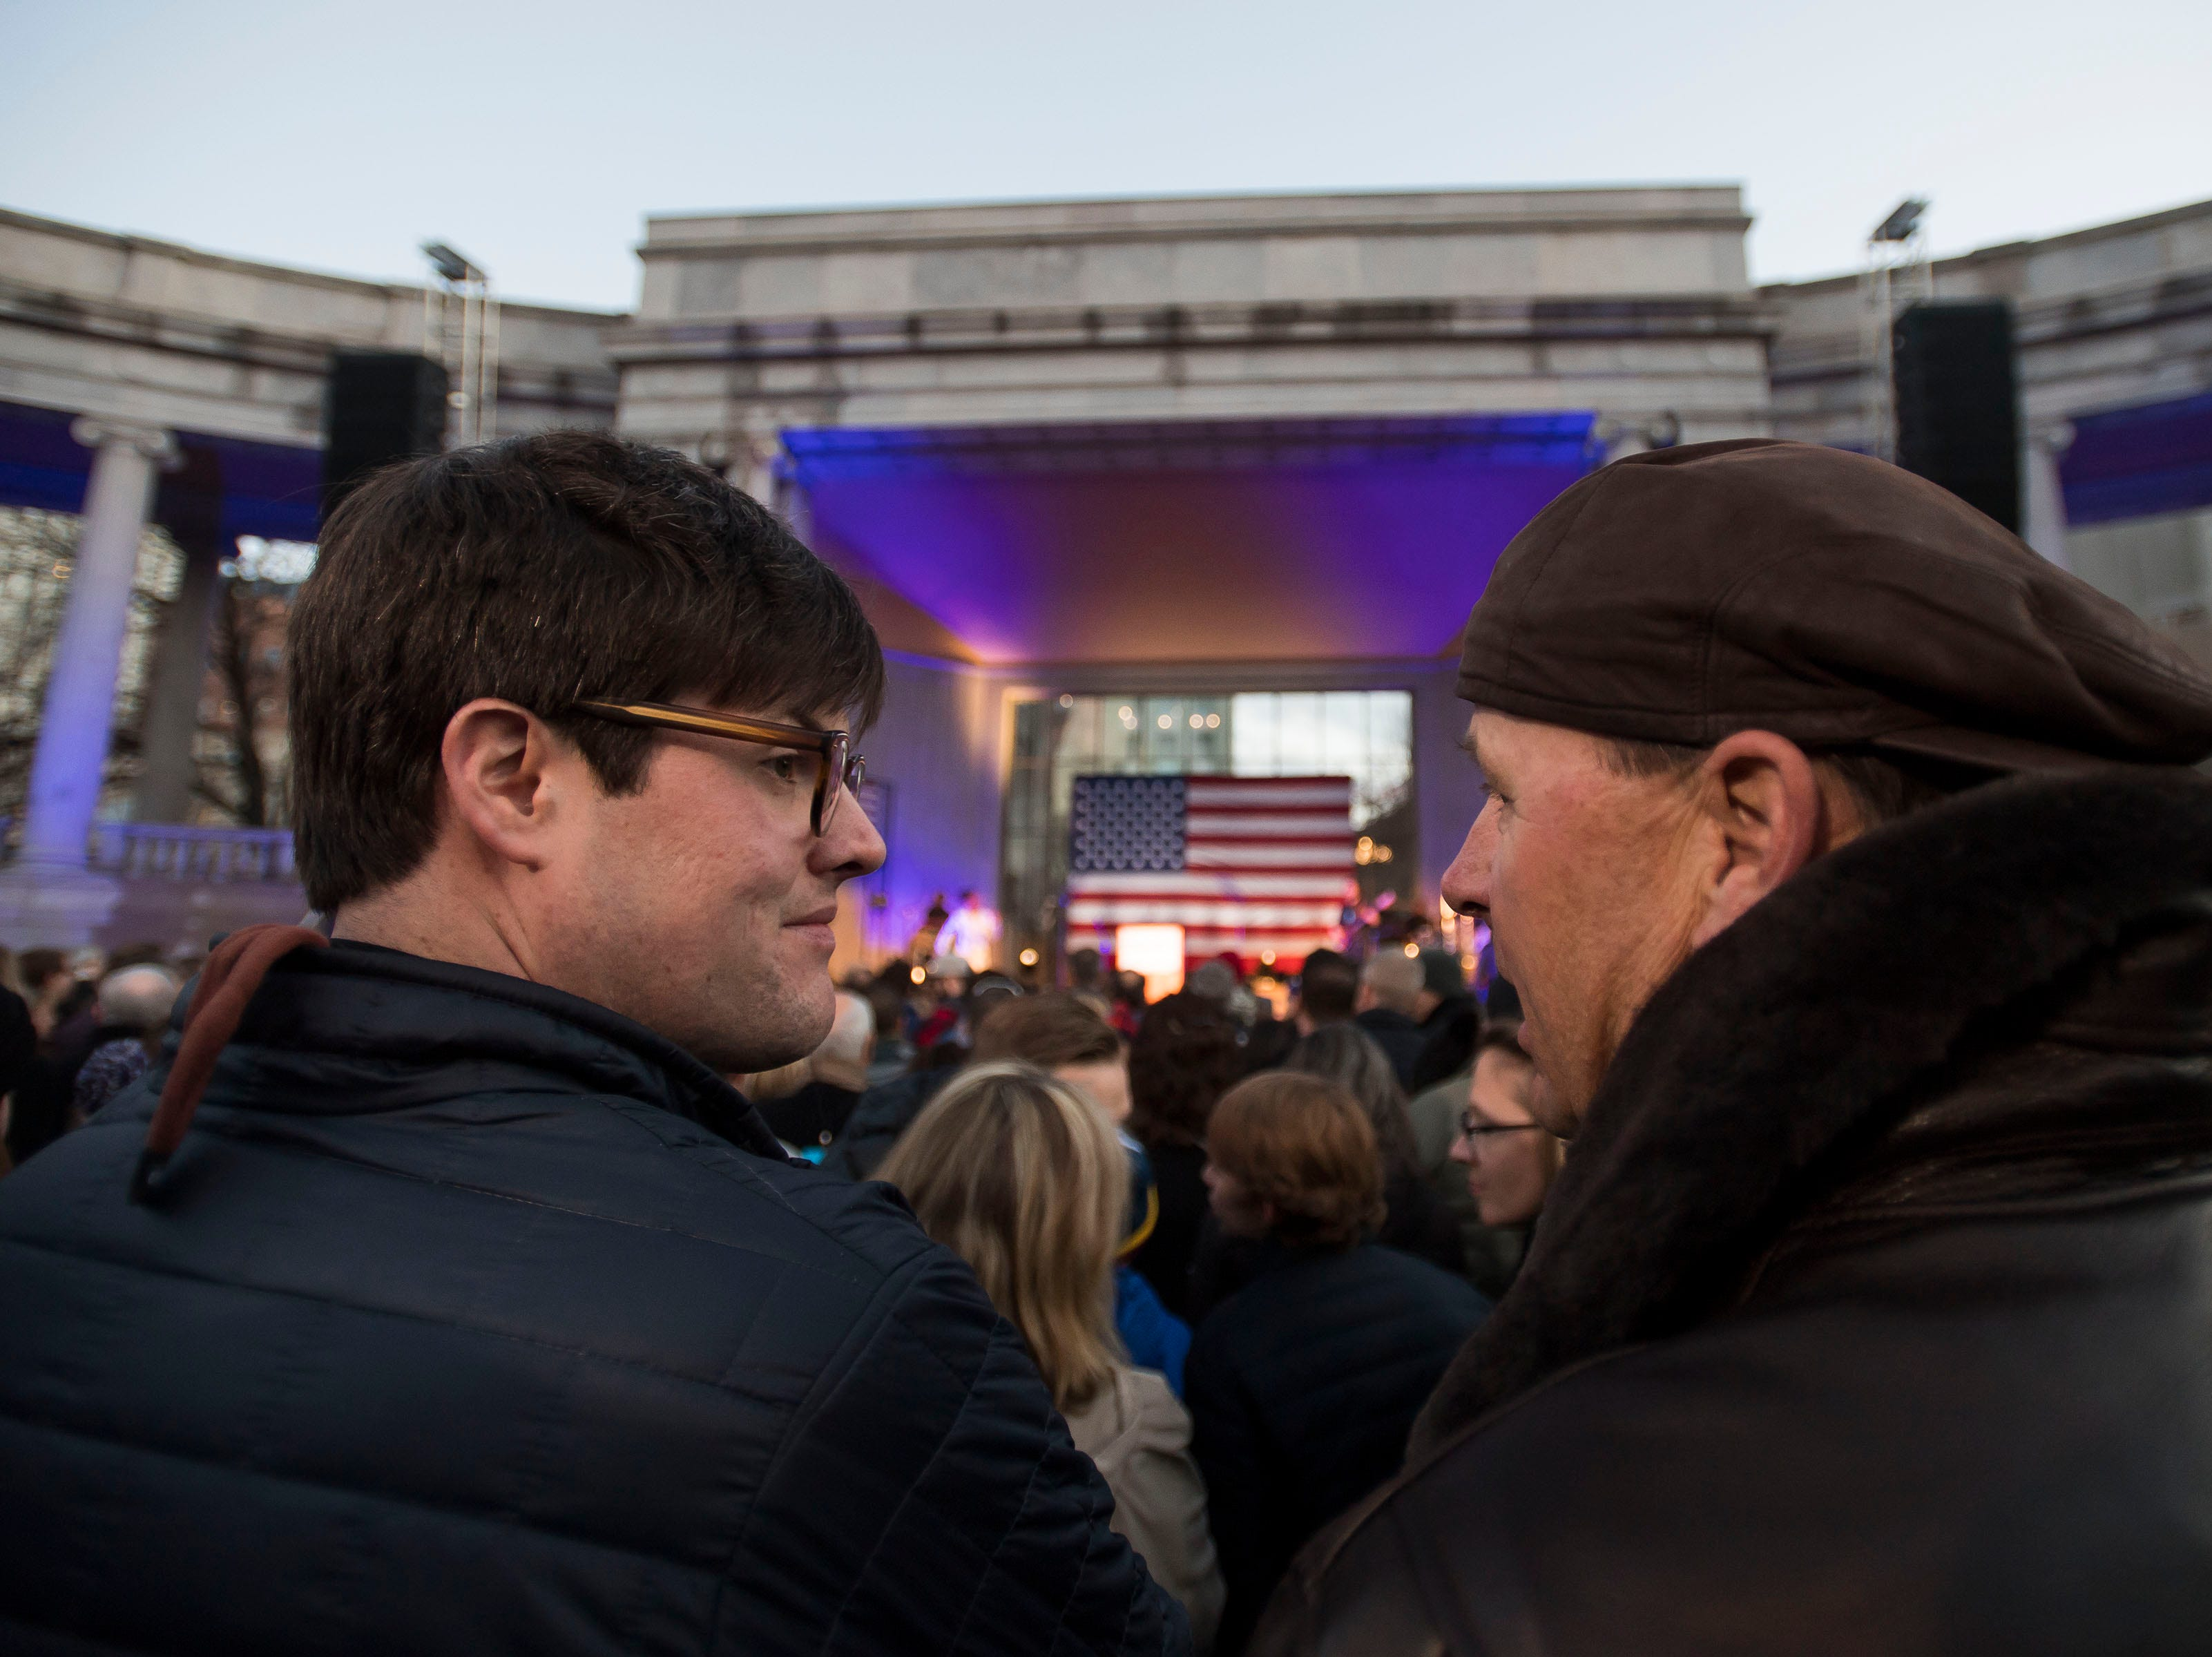 Peter Dea, right, and Kevin Schoelzel talk at the John Hickenlooper presidential campaign kick-off rally on Thursday, March 7, 2019, at the Greek Ampitheatre in Civic Center Park in Denver, Colo.